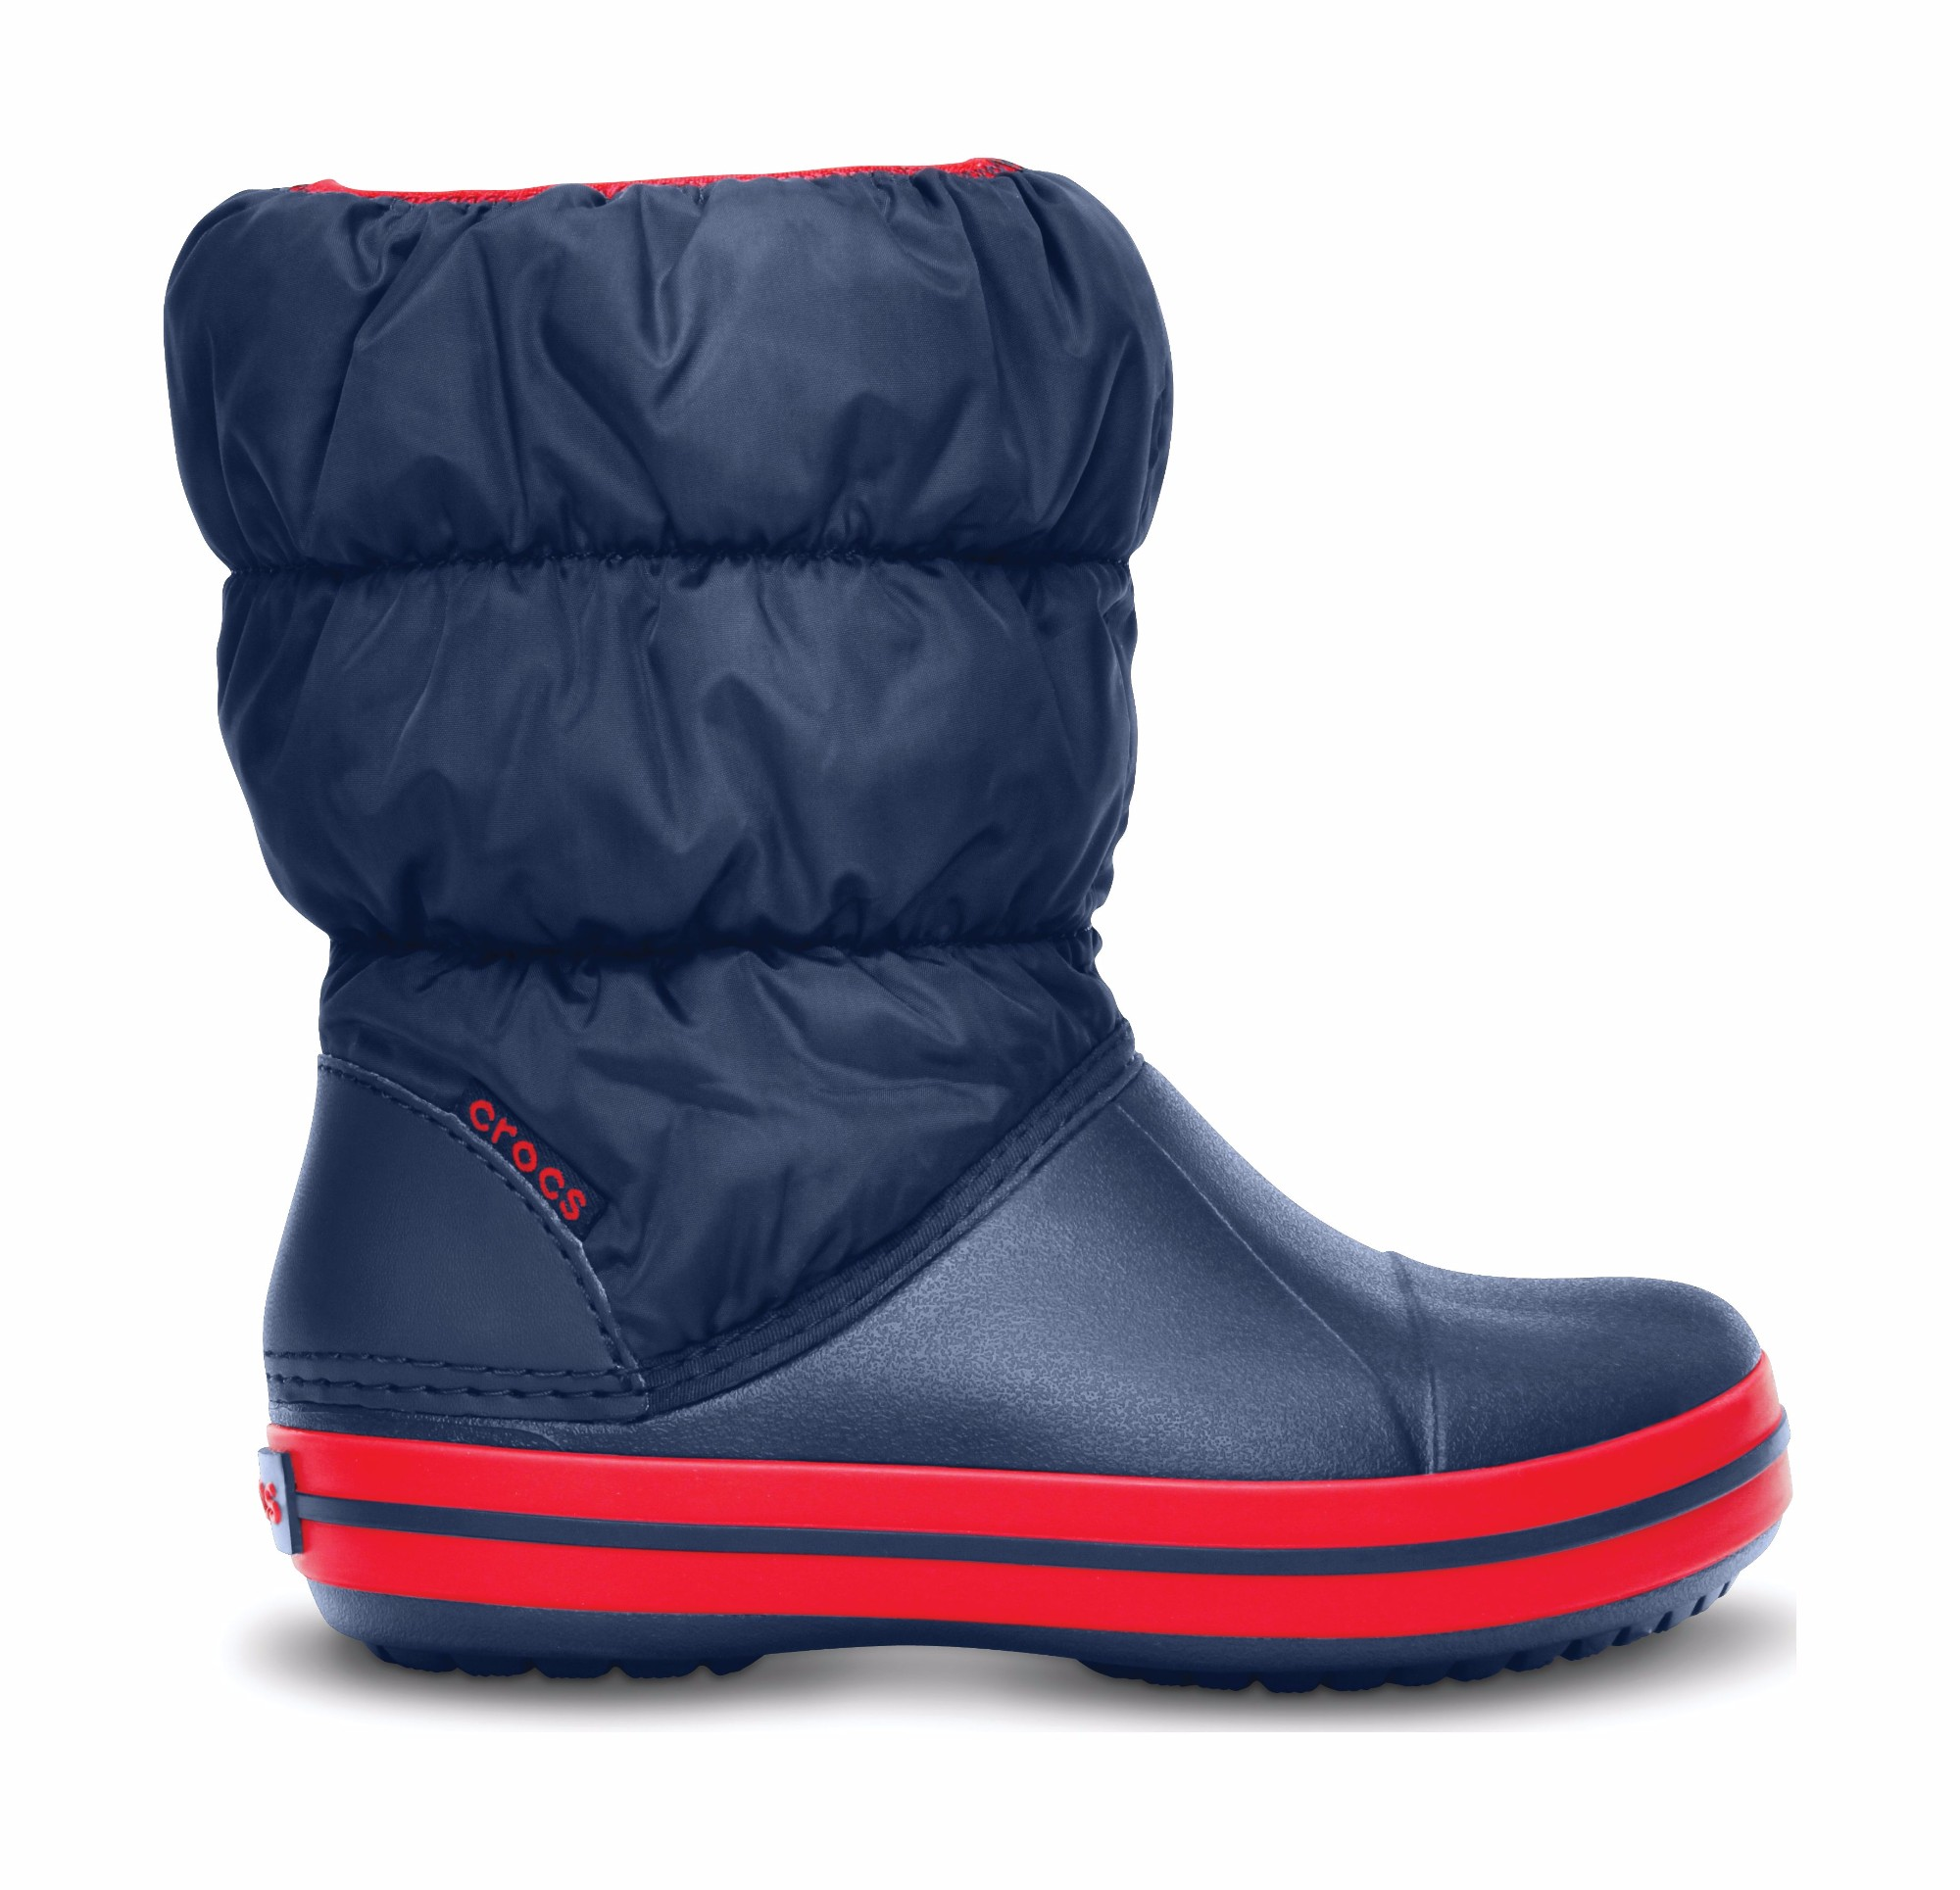 Crocs™ Kids' Winter Puff Boot Dark blue/Red 25